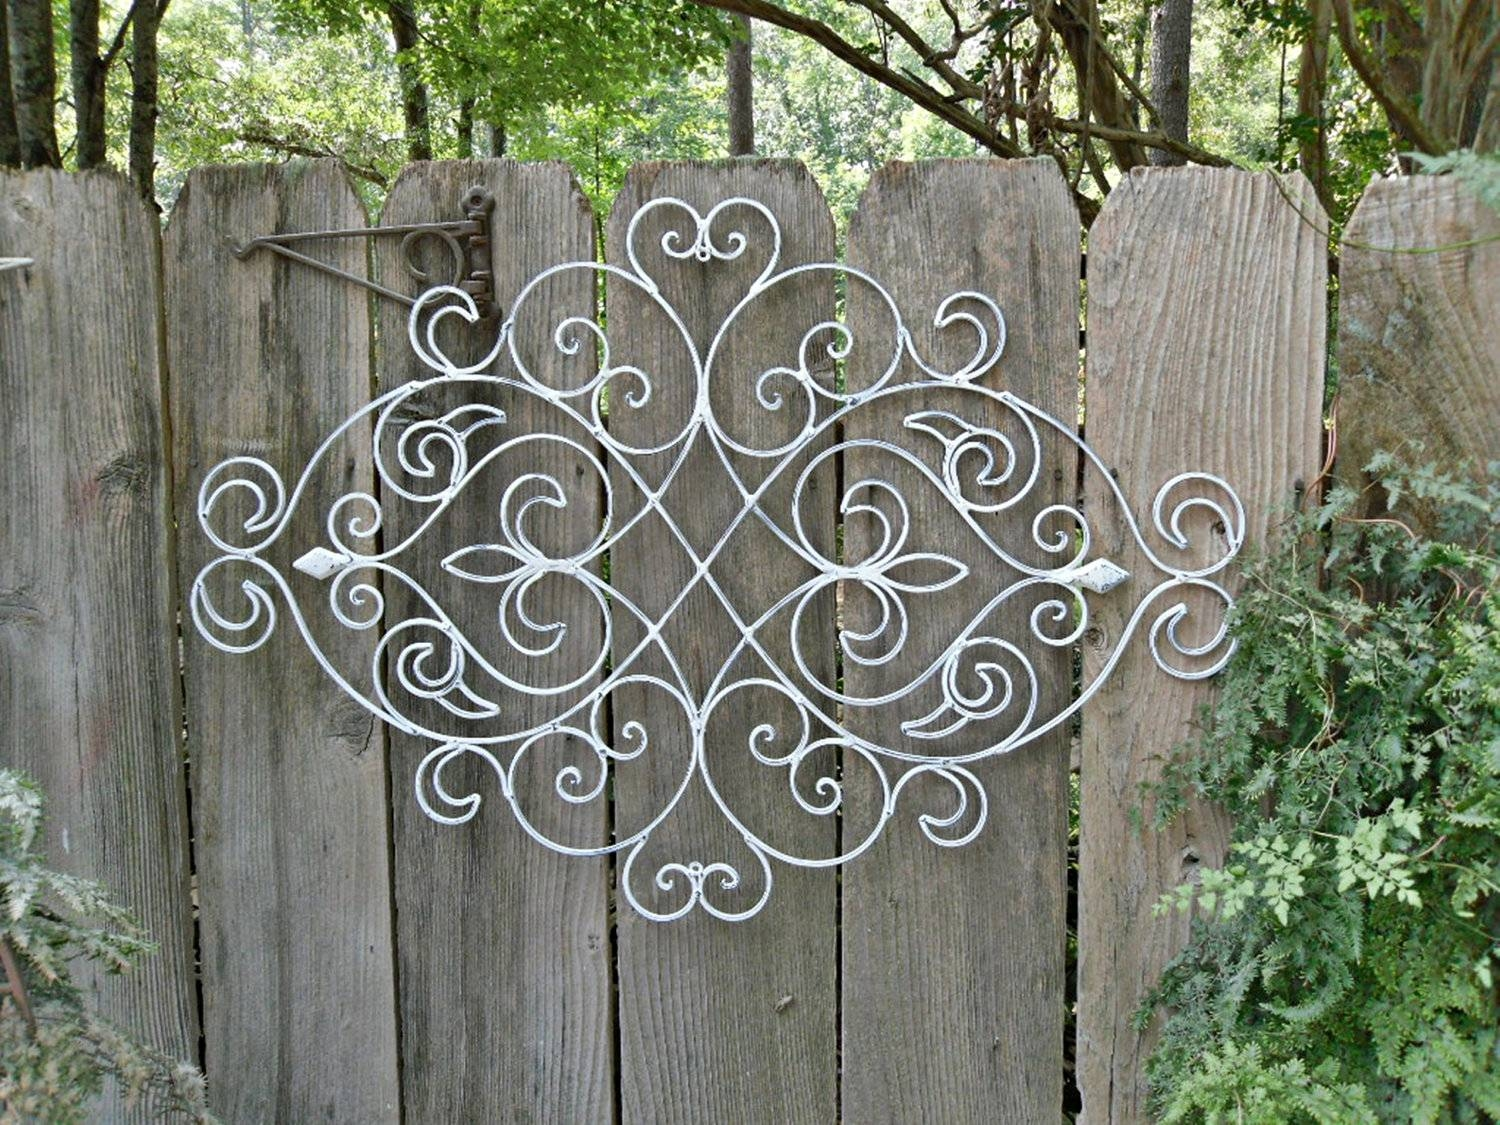 Discount Outdoor Metal Wall Art Decor — Joanne Russo Homesjoanne Pertaining To Most Popular Outdoor Metal Wall Art Decors (View 5 of 20)